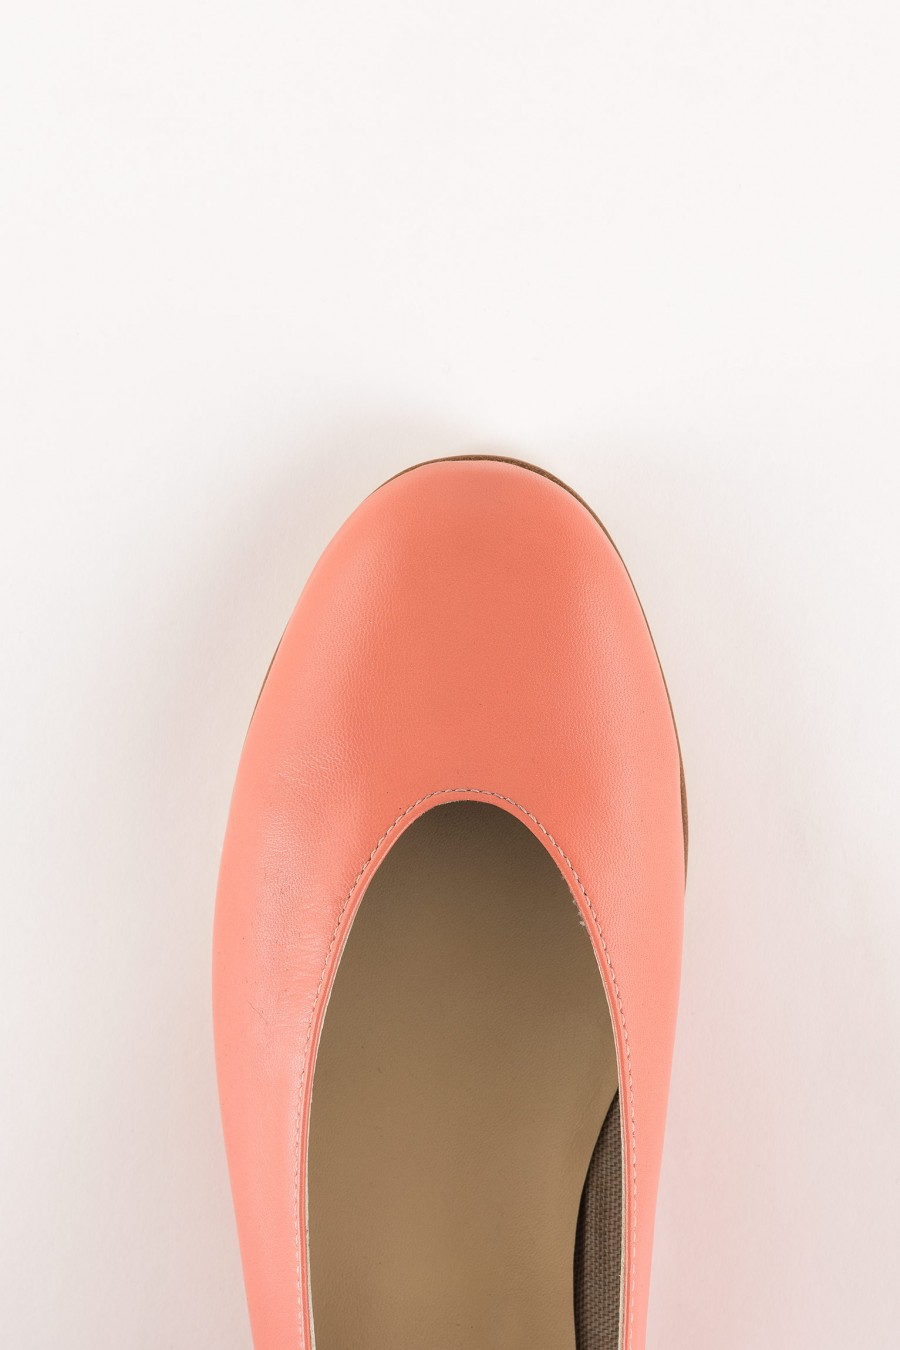 pink rounded shoes